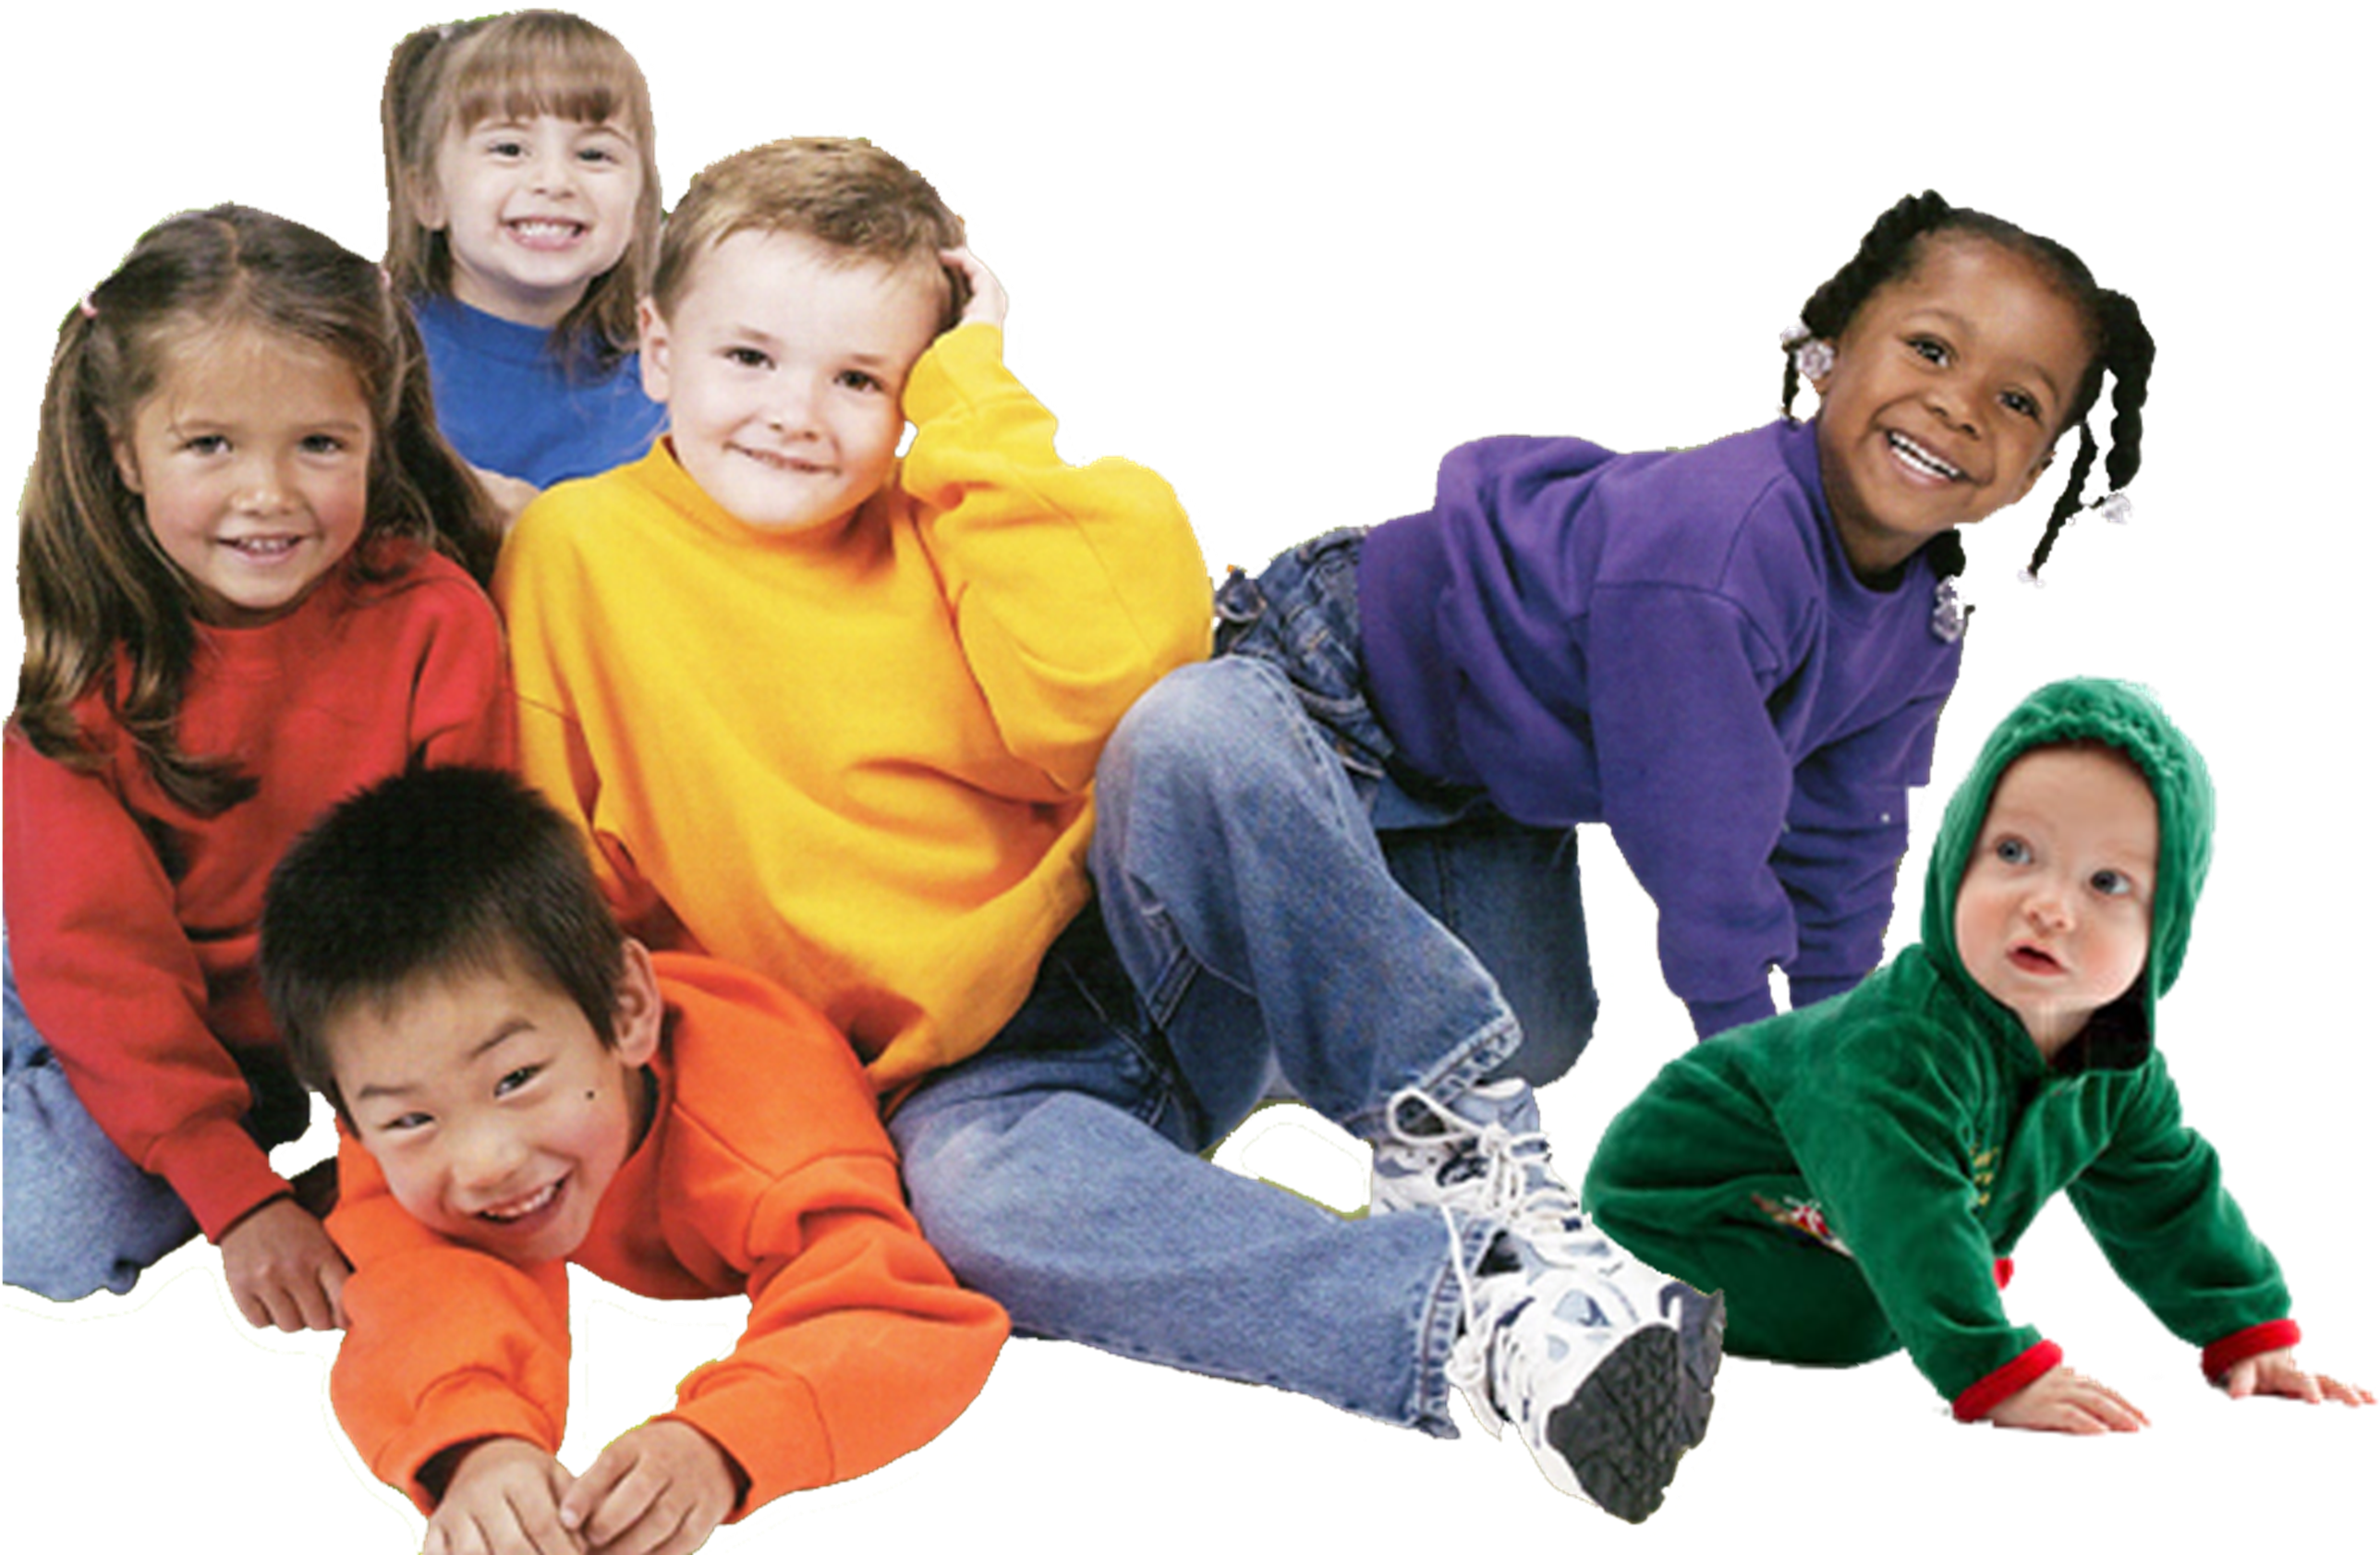 Children transparent png. Image purepng free cc